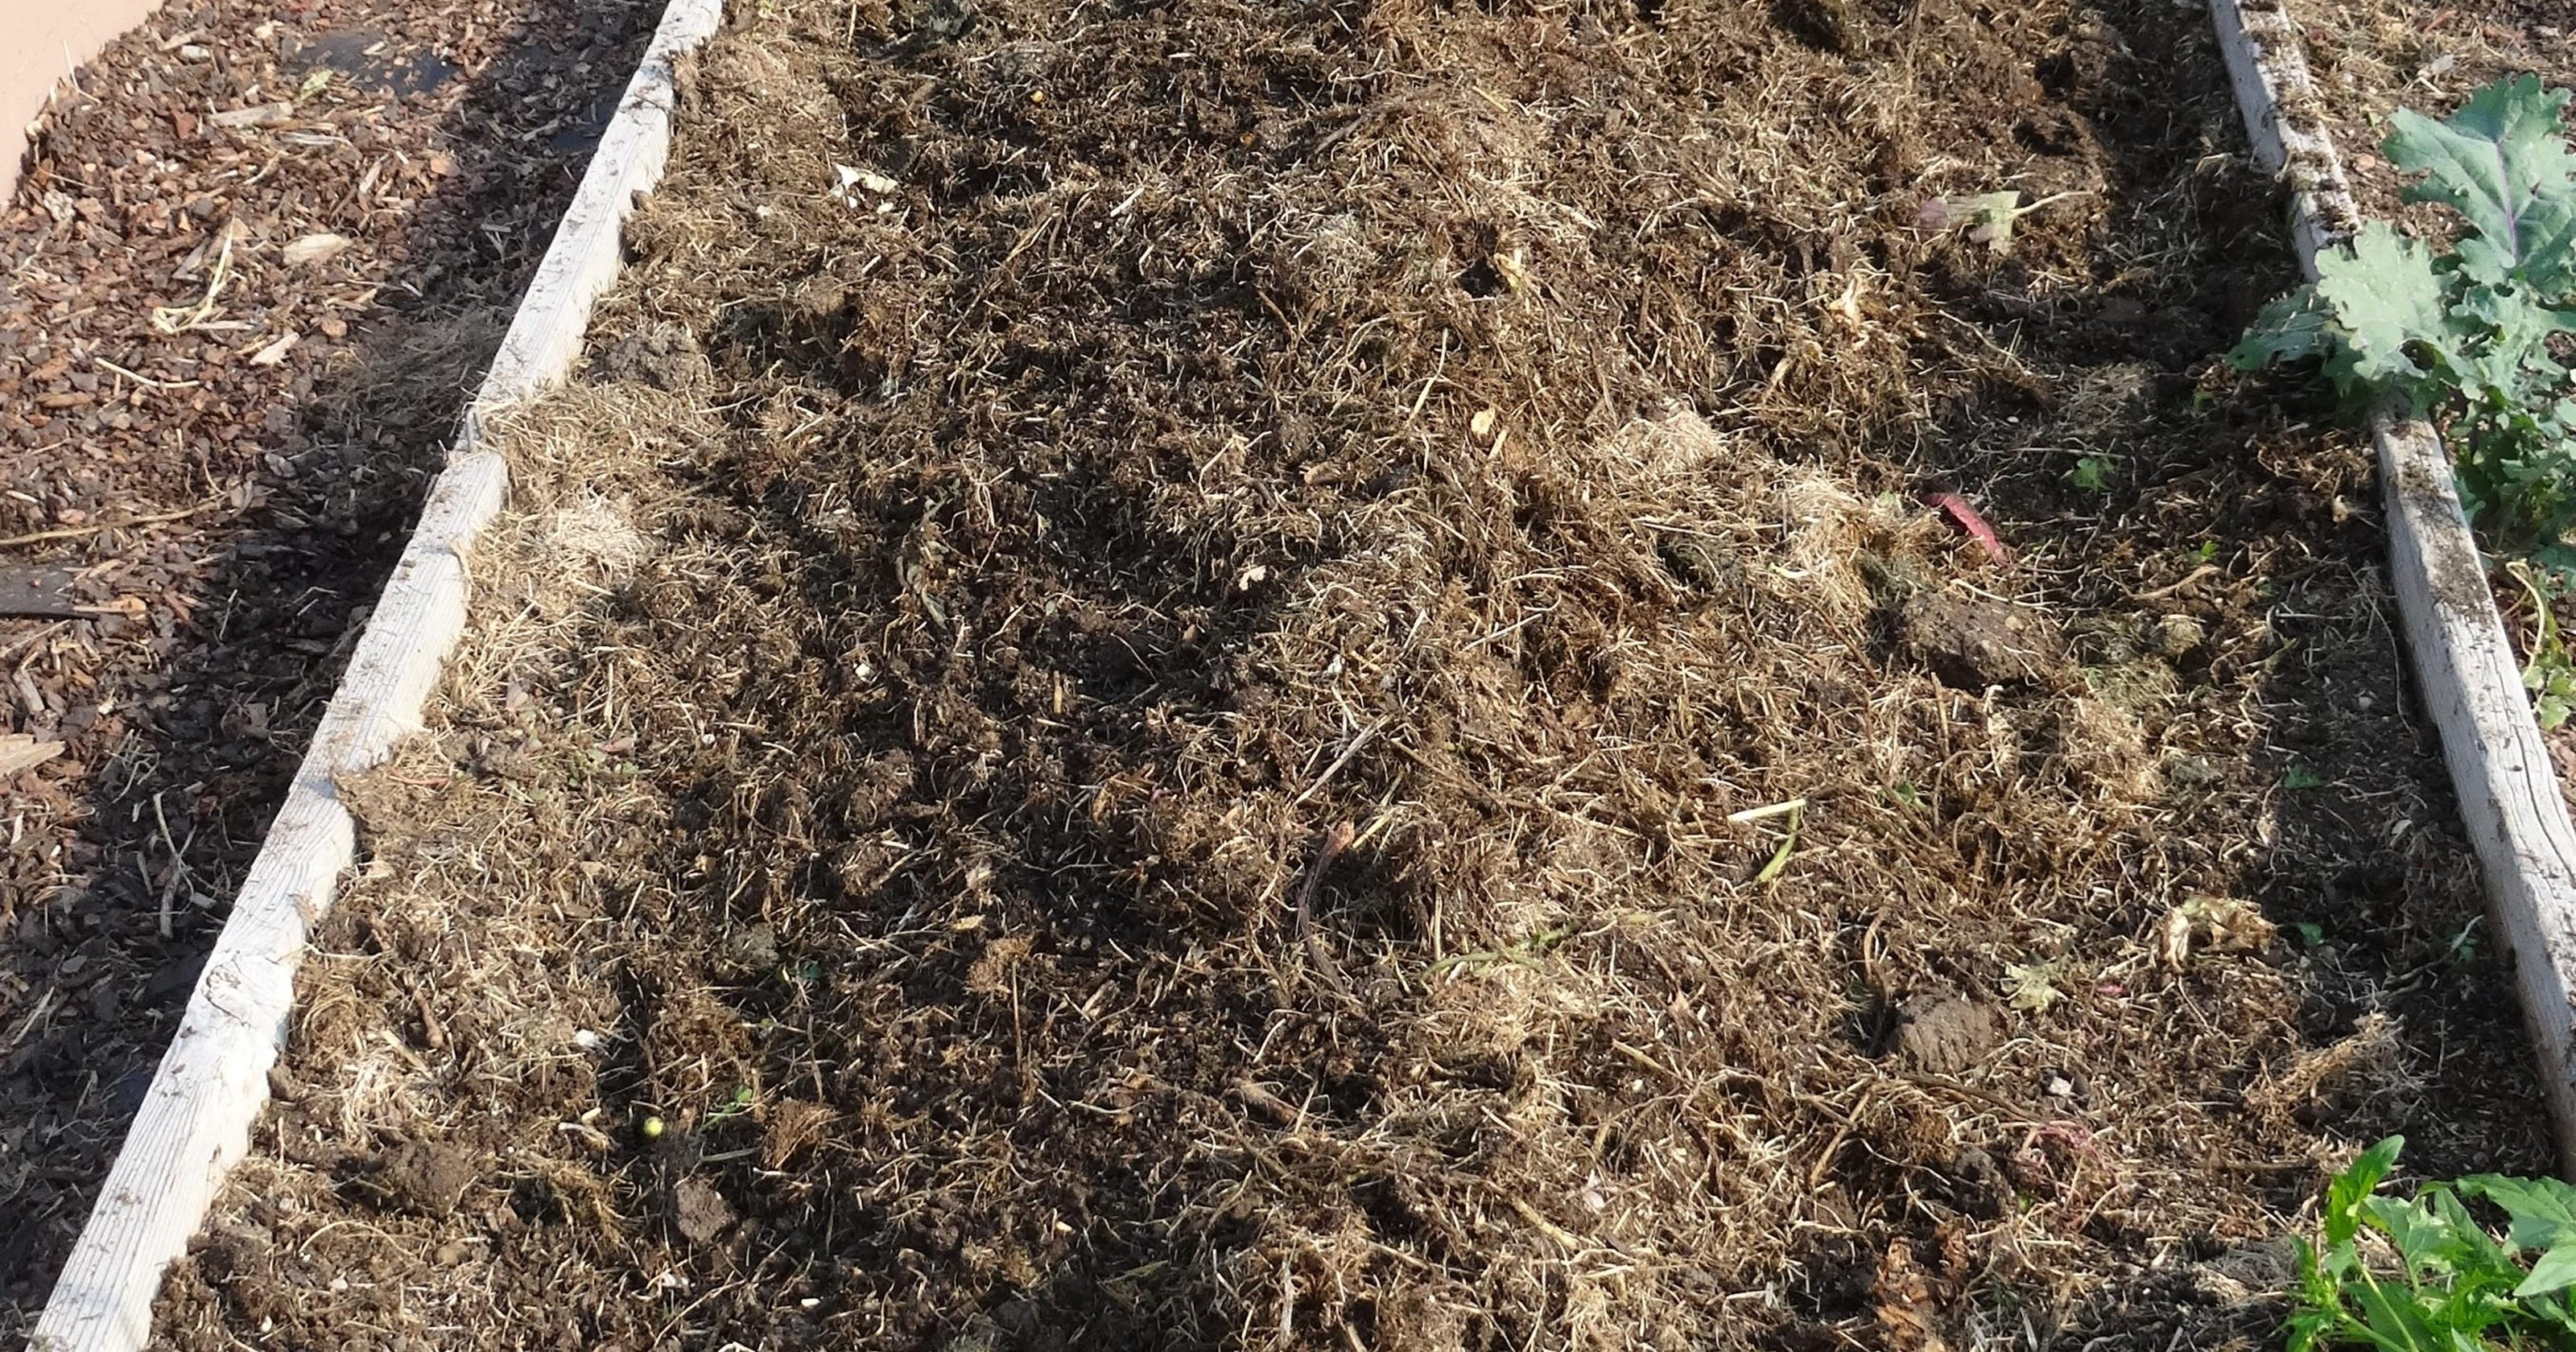 Tend to soil now to have great gardens next spring